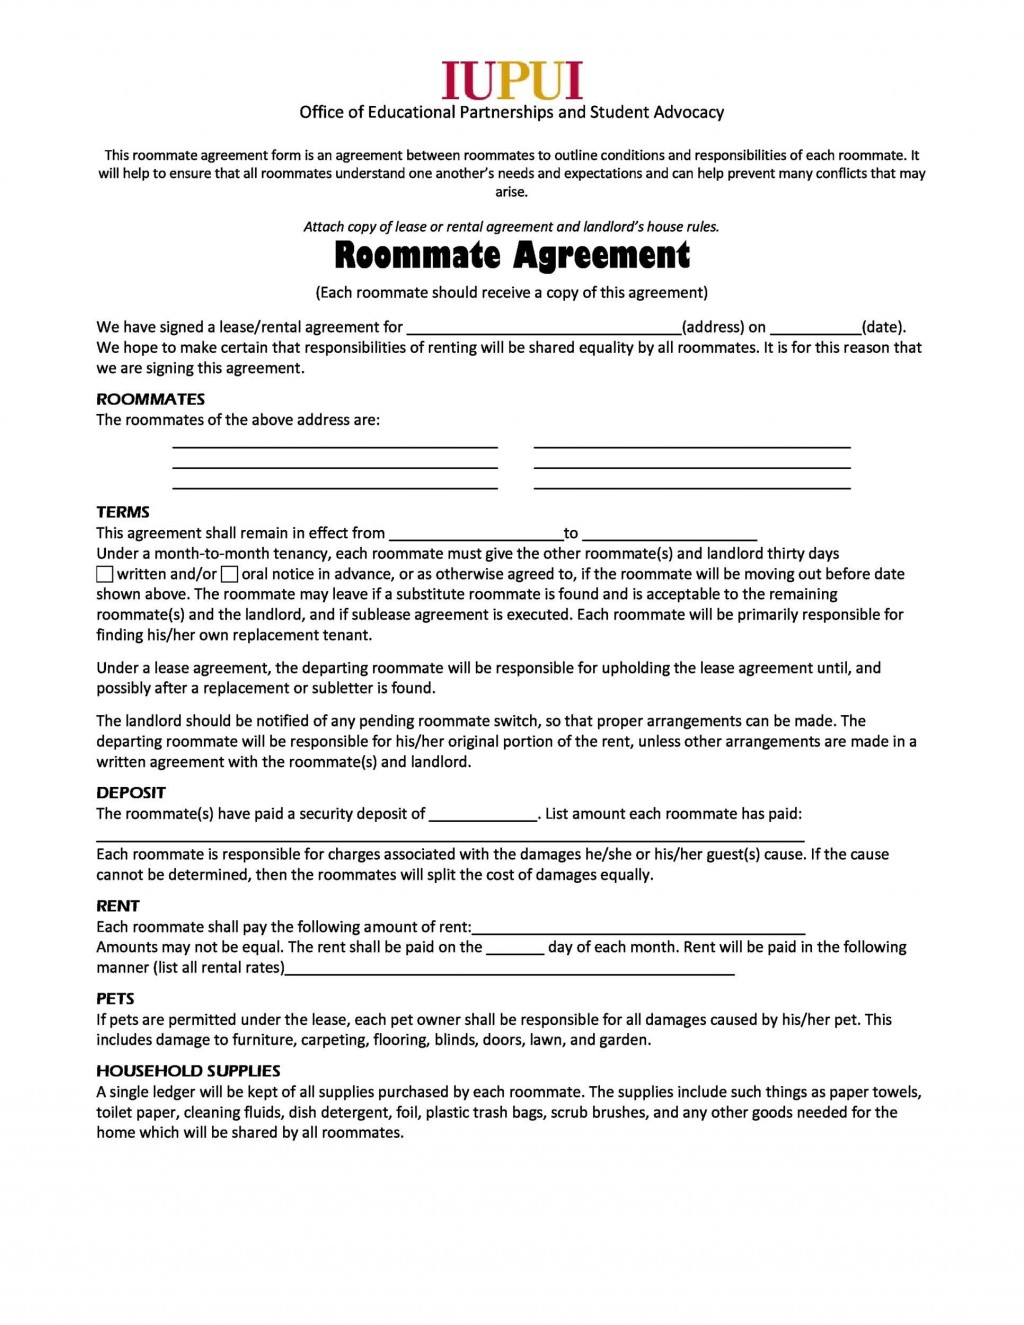 008 Rare Roommate Rental Agreement Template Inspiration  Form Free ContractLarge